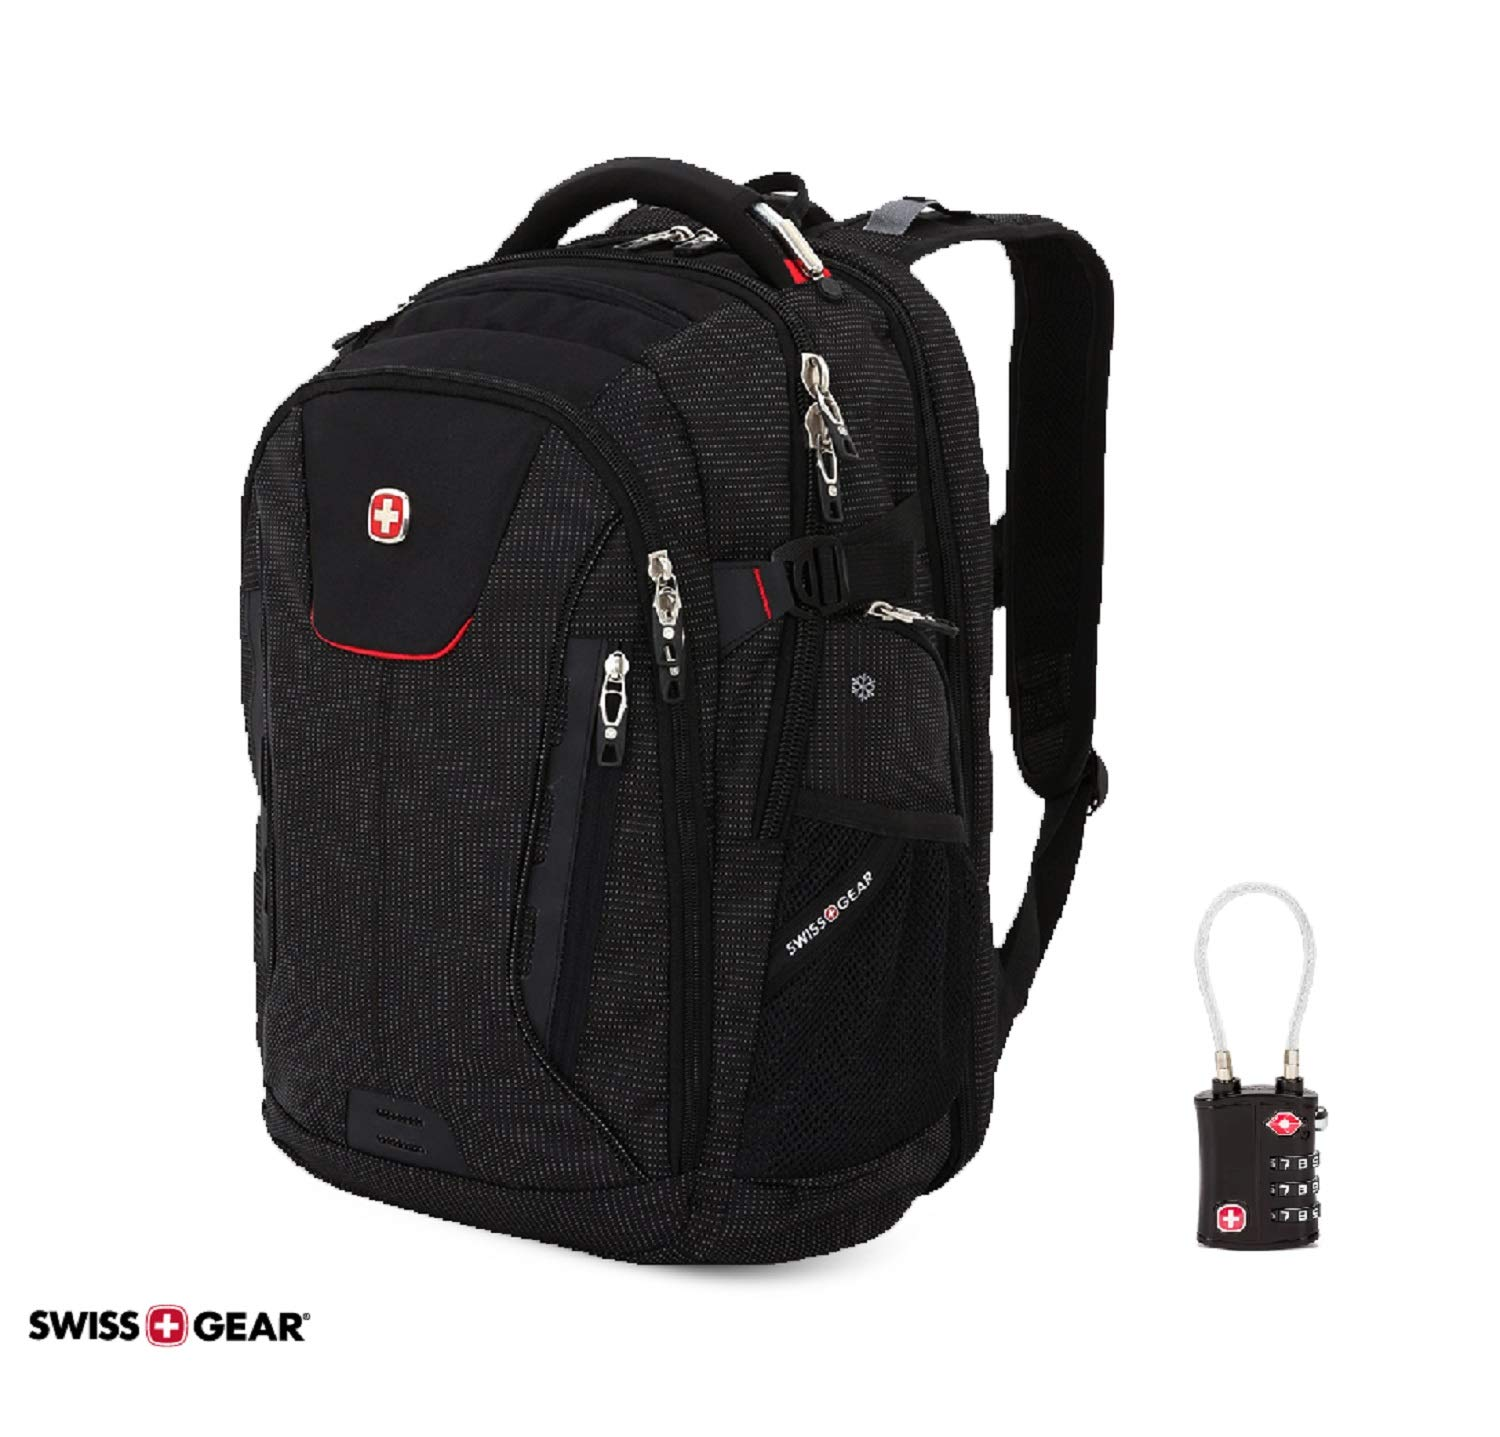 SWISSGEAR 5358 ScanSmart Ultimate Protection Organization USB Backpack (Black) With TSA security Lock Exclusive Bundle by Swiss Gear